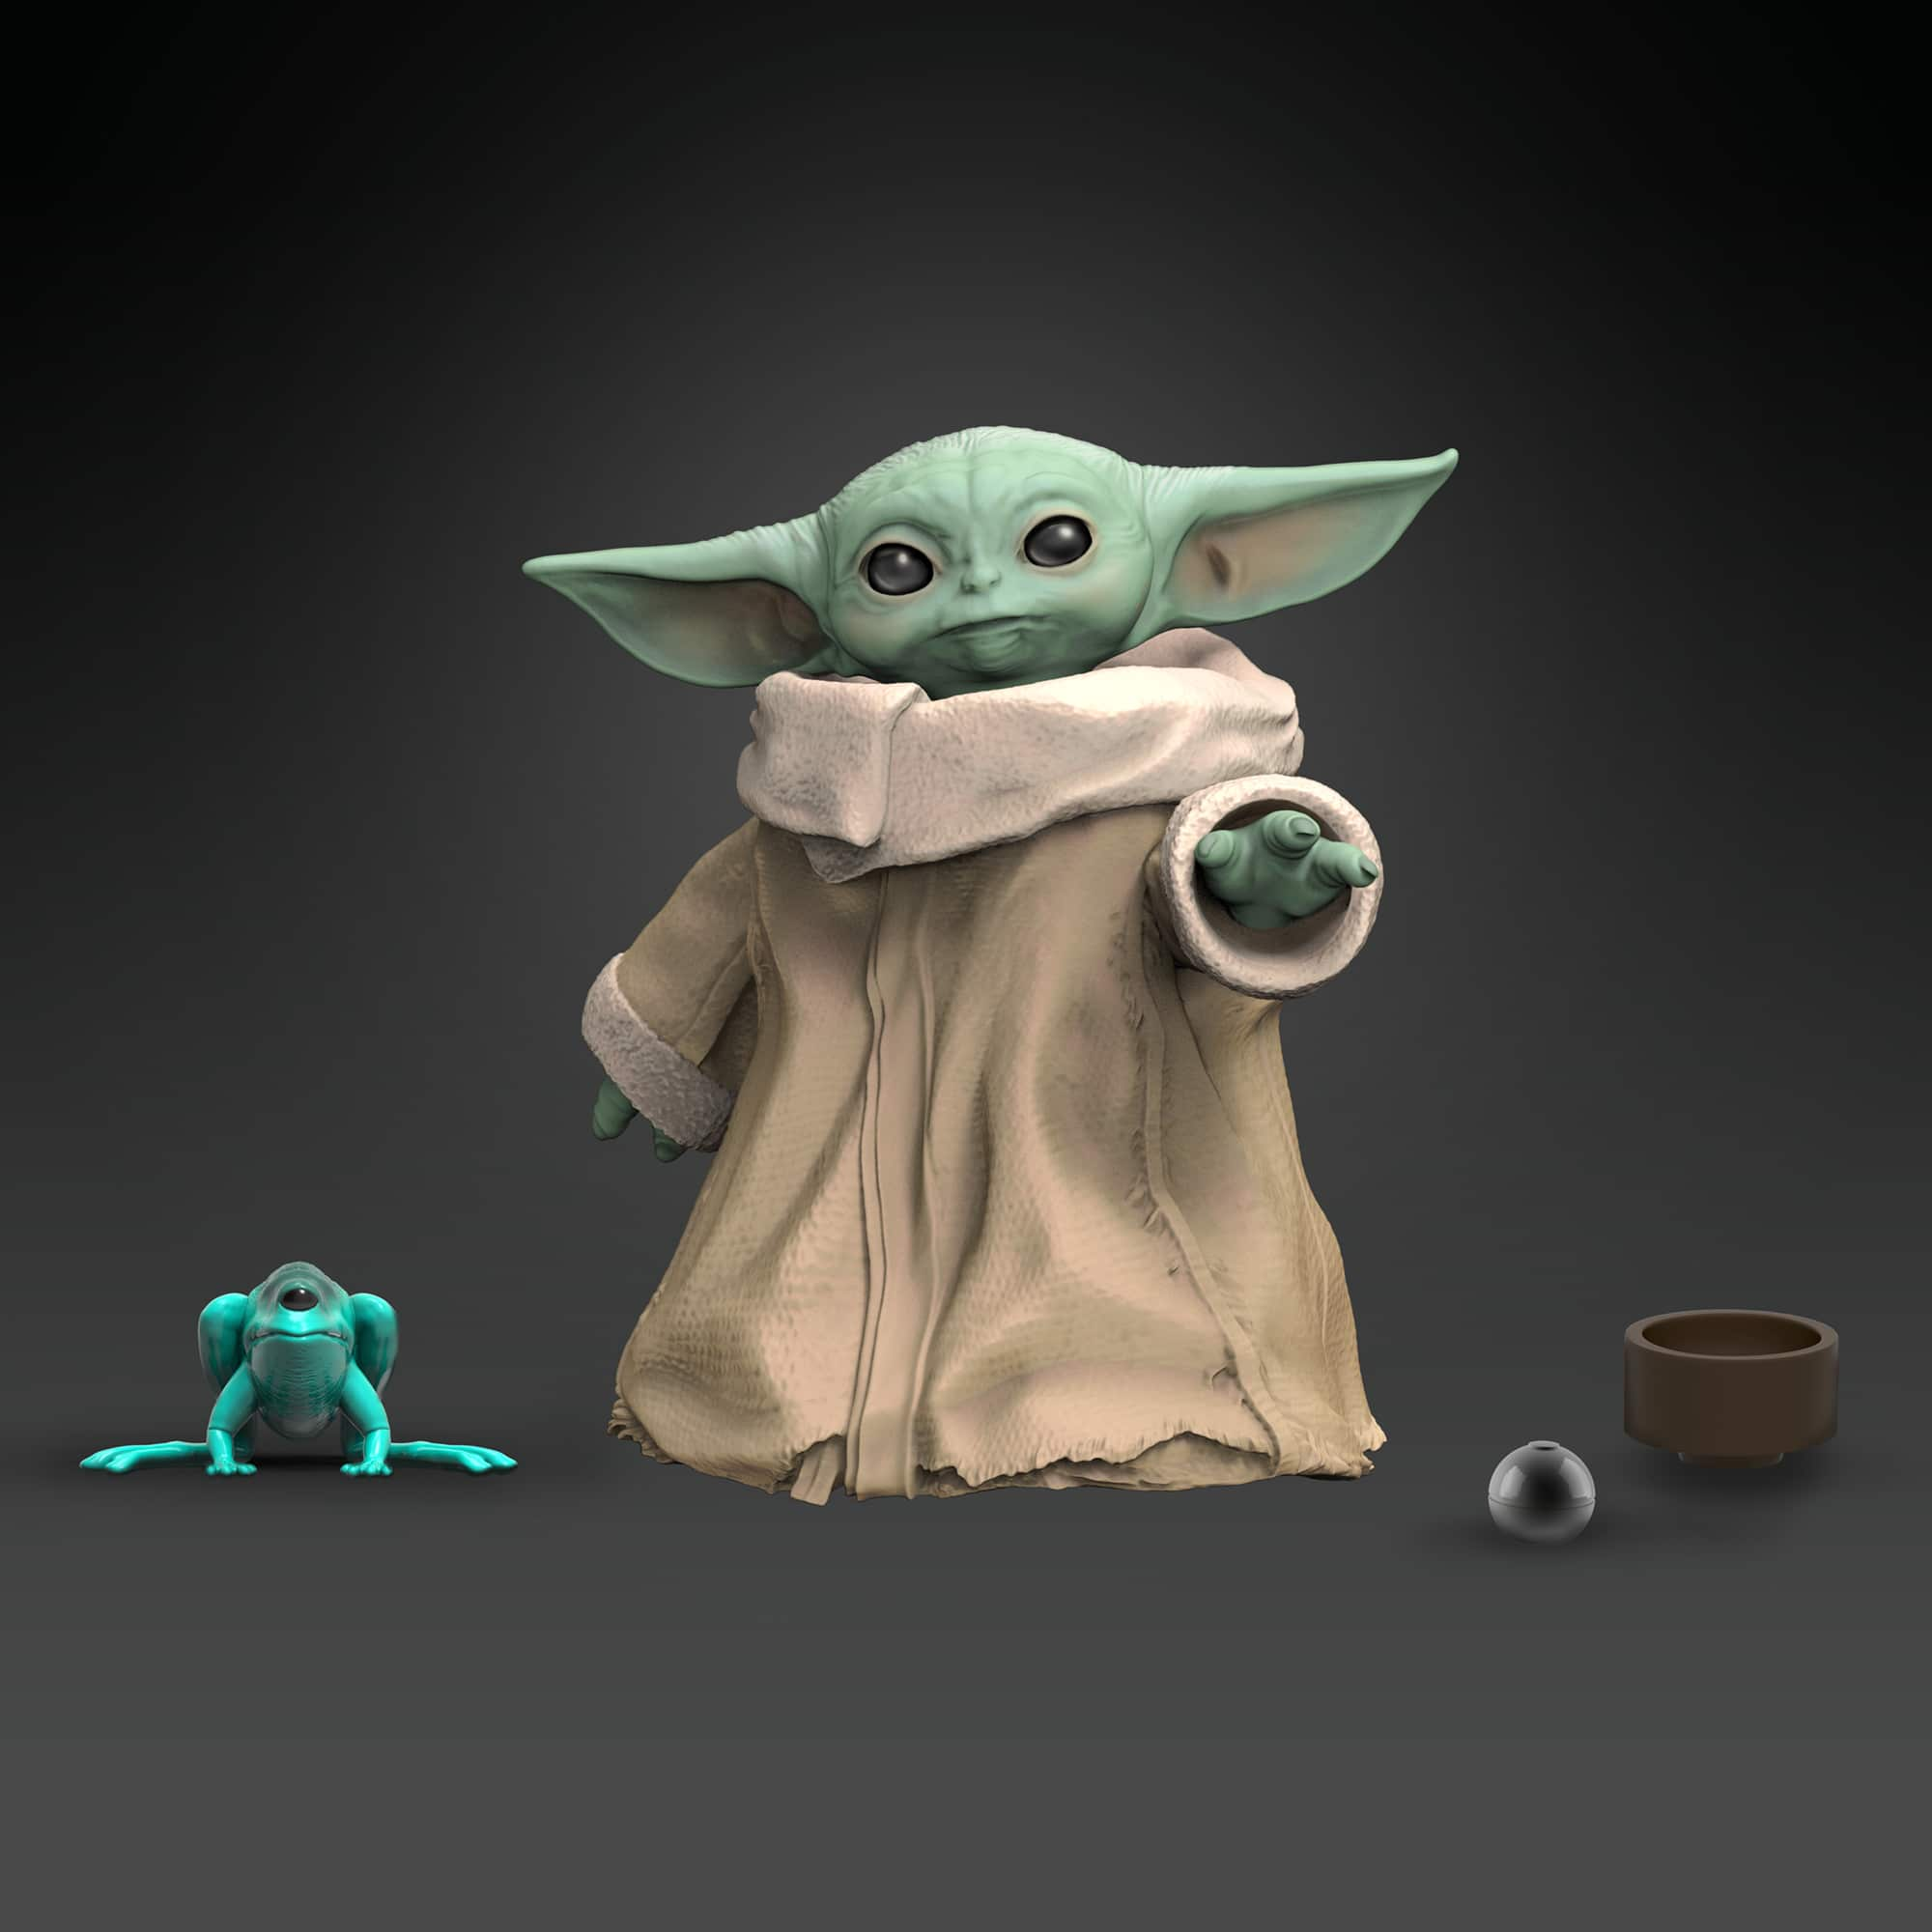 Hasbro's first Baby Yoda toys are here and they're freaking adorable 14